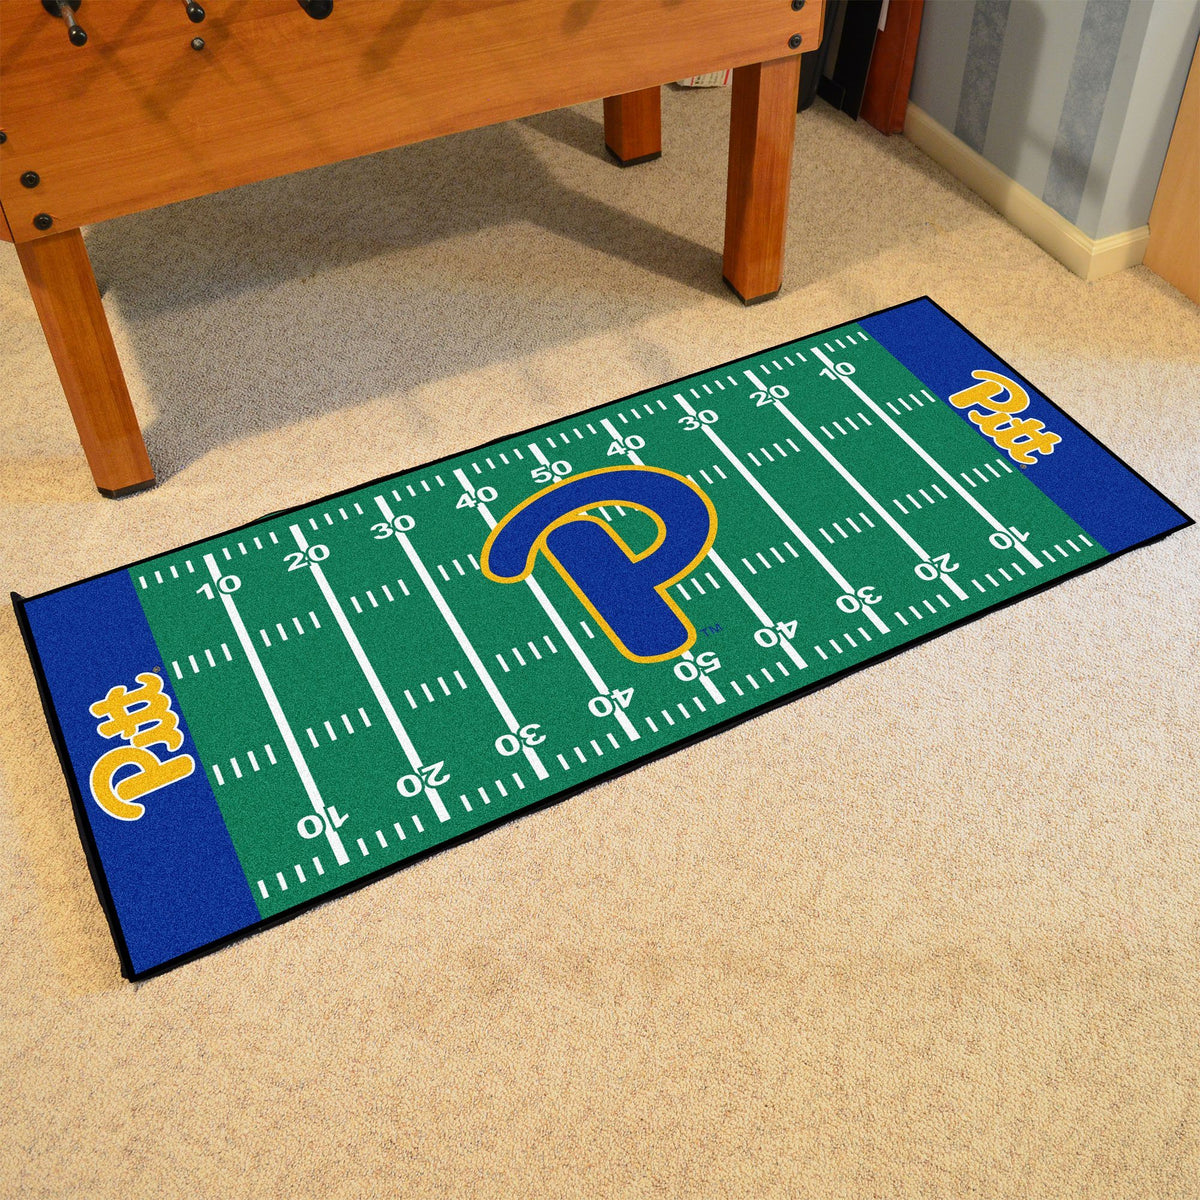 Collegiate - Football Field Runner Collegiate Mats, Rectangular Mats, Football Field Runner, Collegiate, Home Fan Mats Pitt